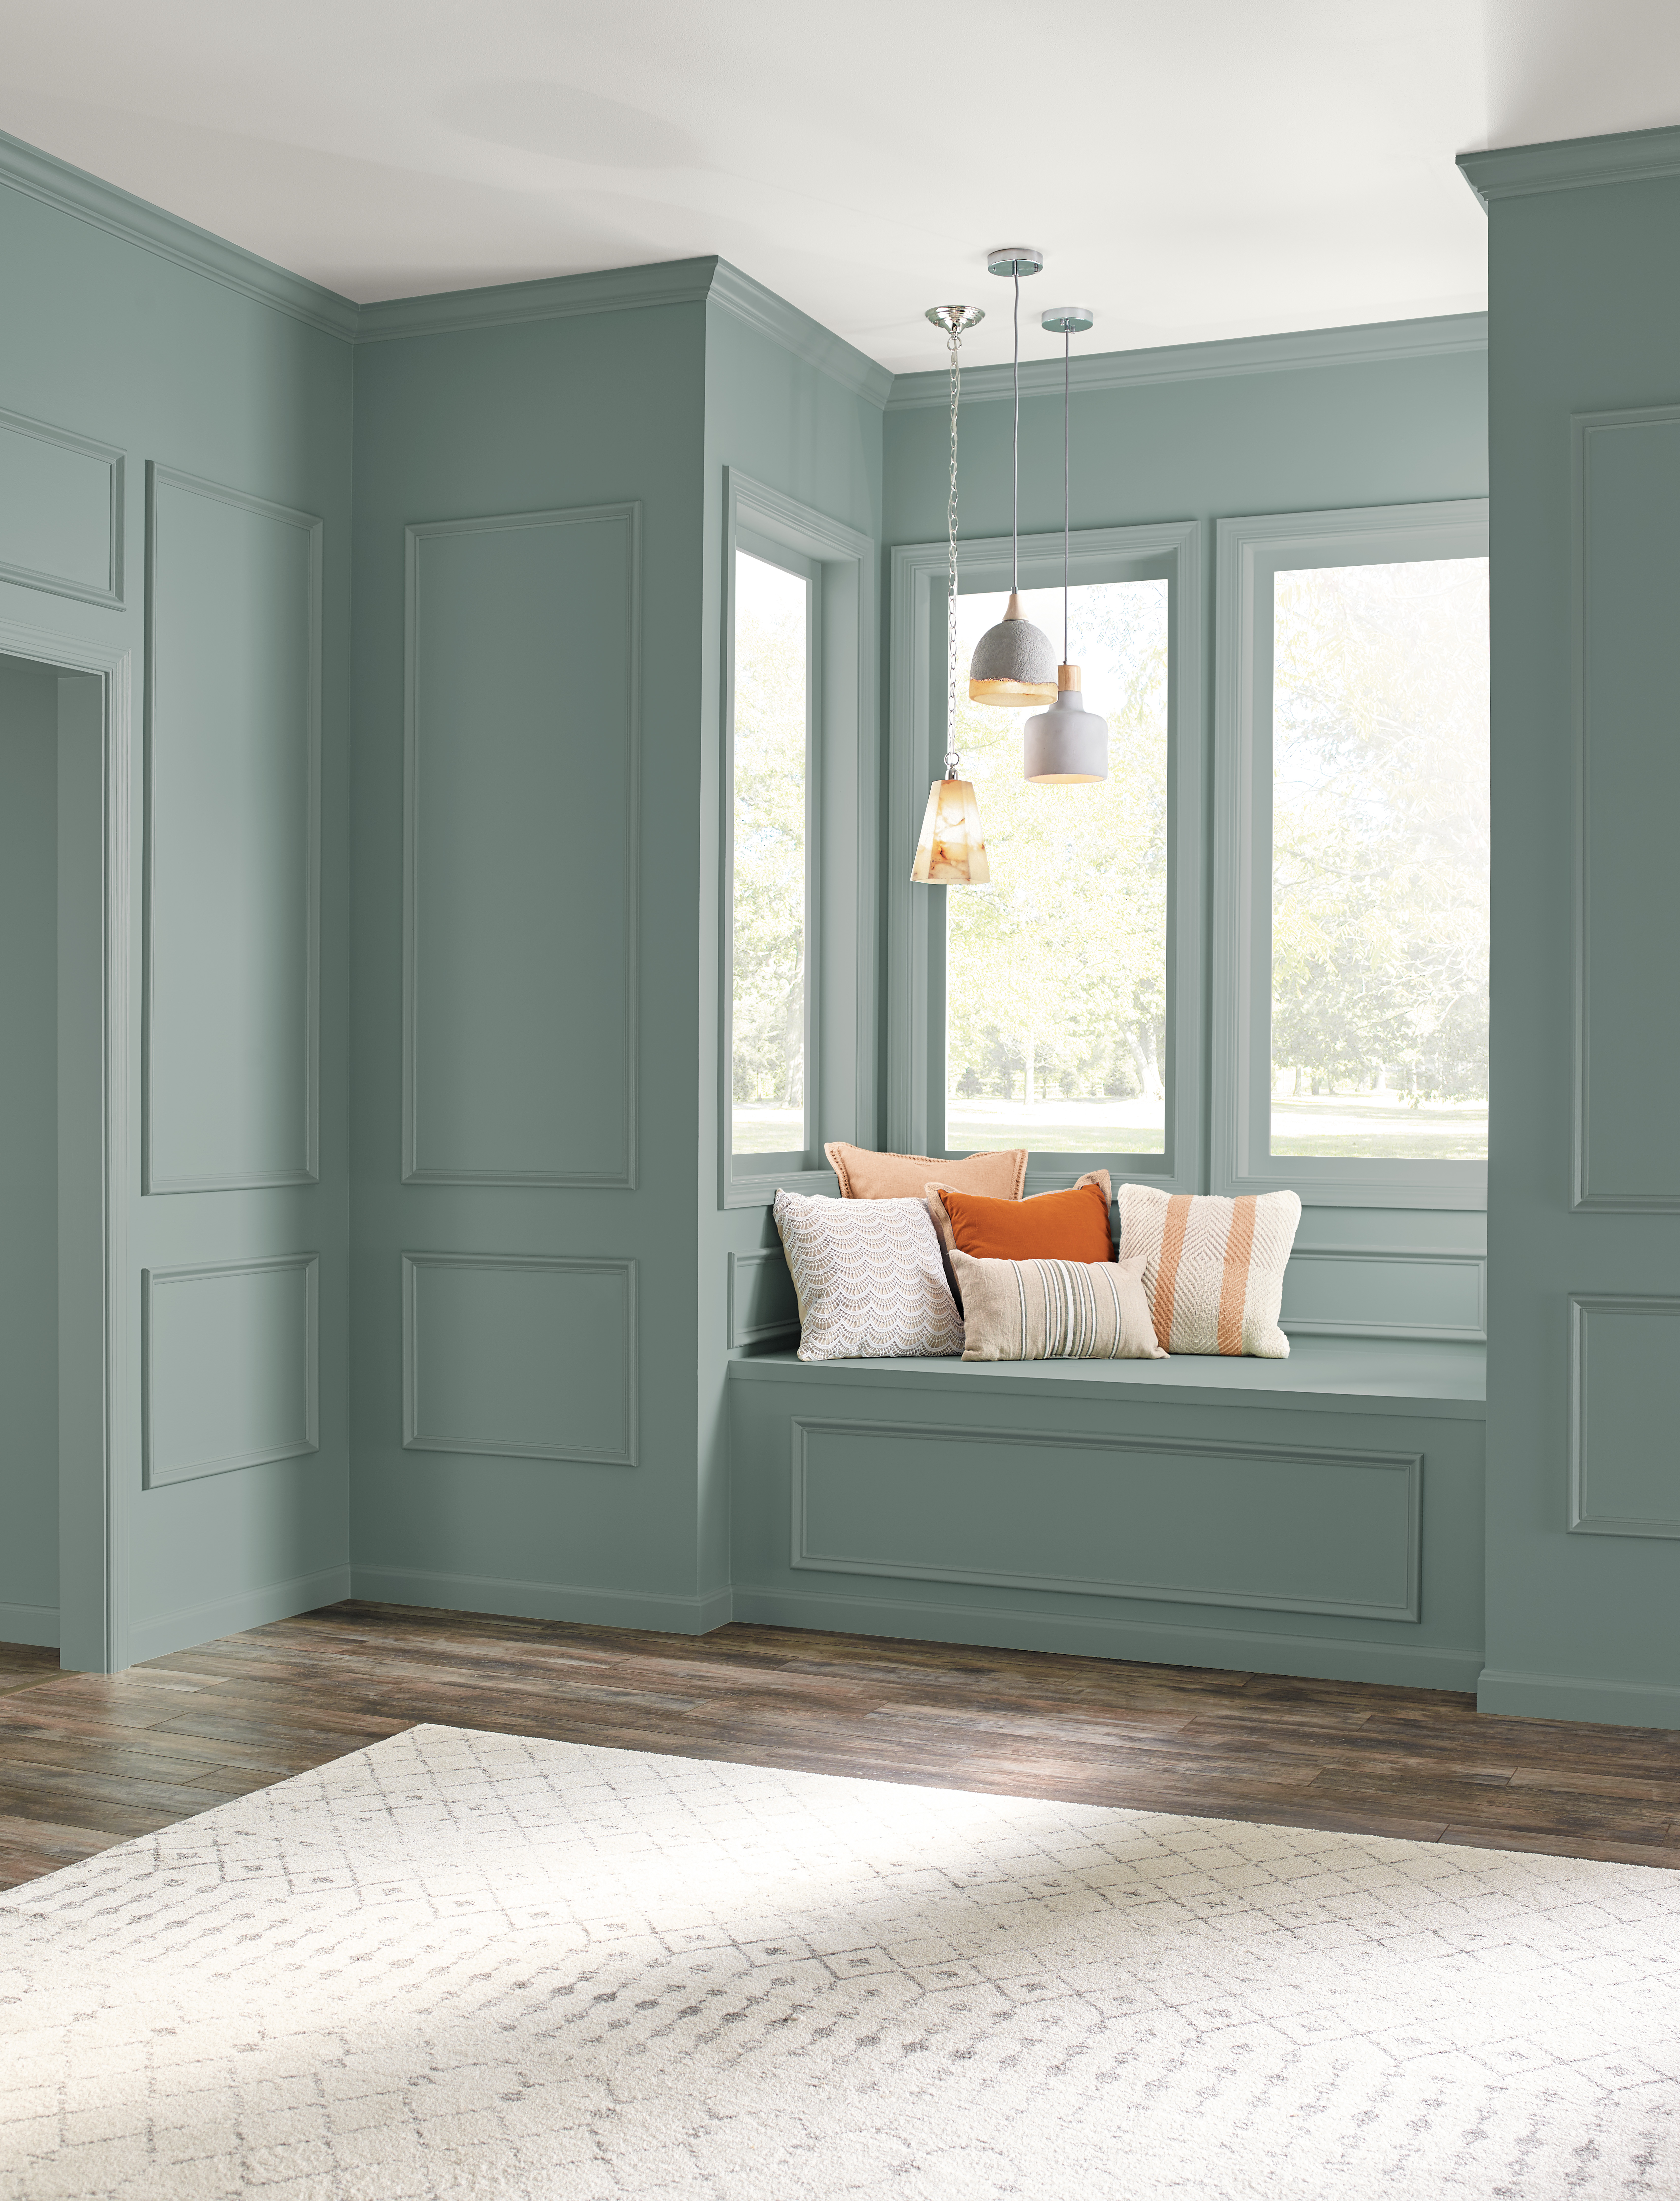 ceiling behr a discover mauve colors gloss on latest home the for neutral paint and decor interior finish color melody trends high pin like